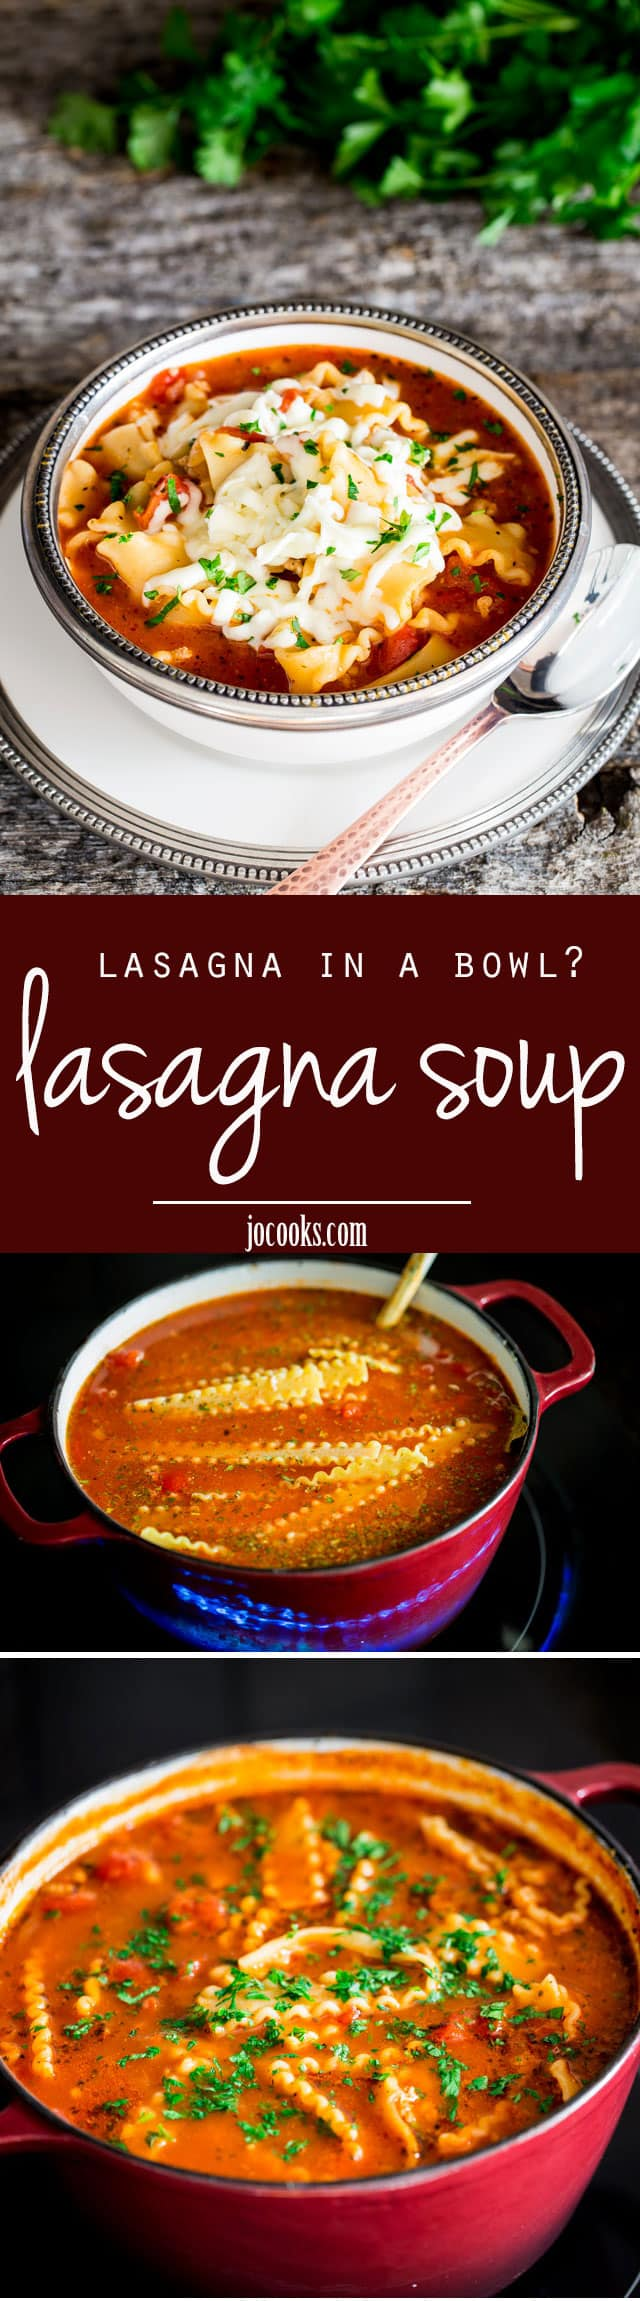 Lasagna Soup - All the flavors of traditional Lasagna but in a bowl! Perfect for those times when you're craving lasagna but lack the time.